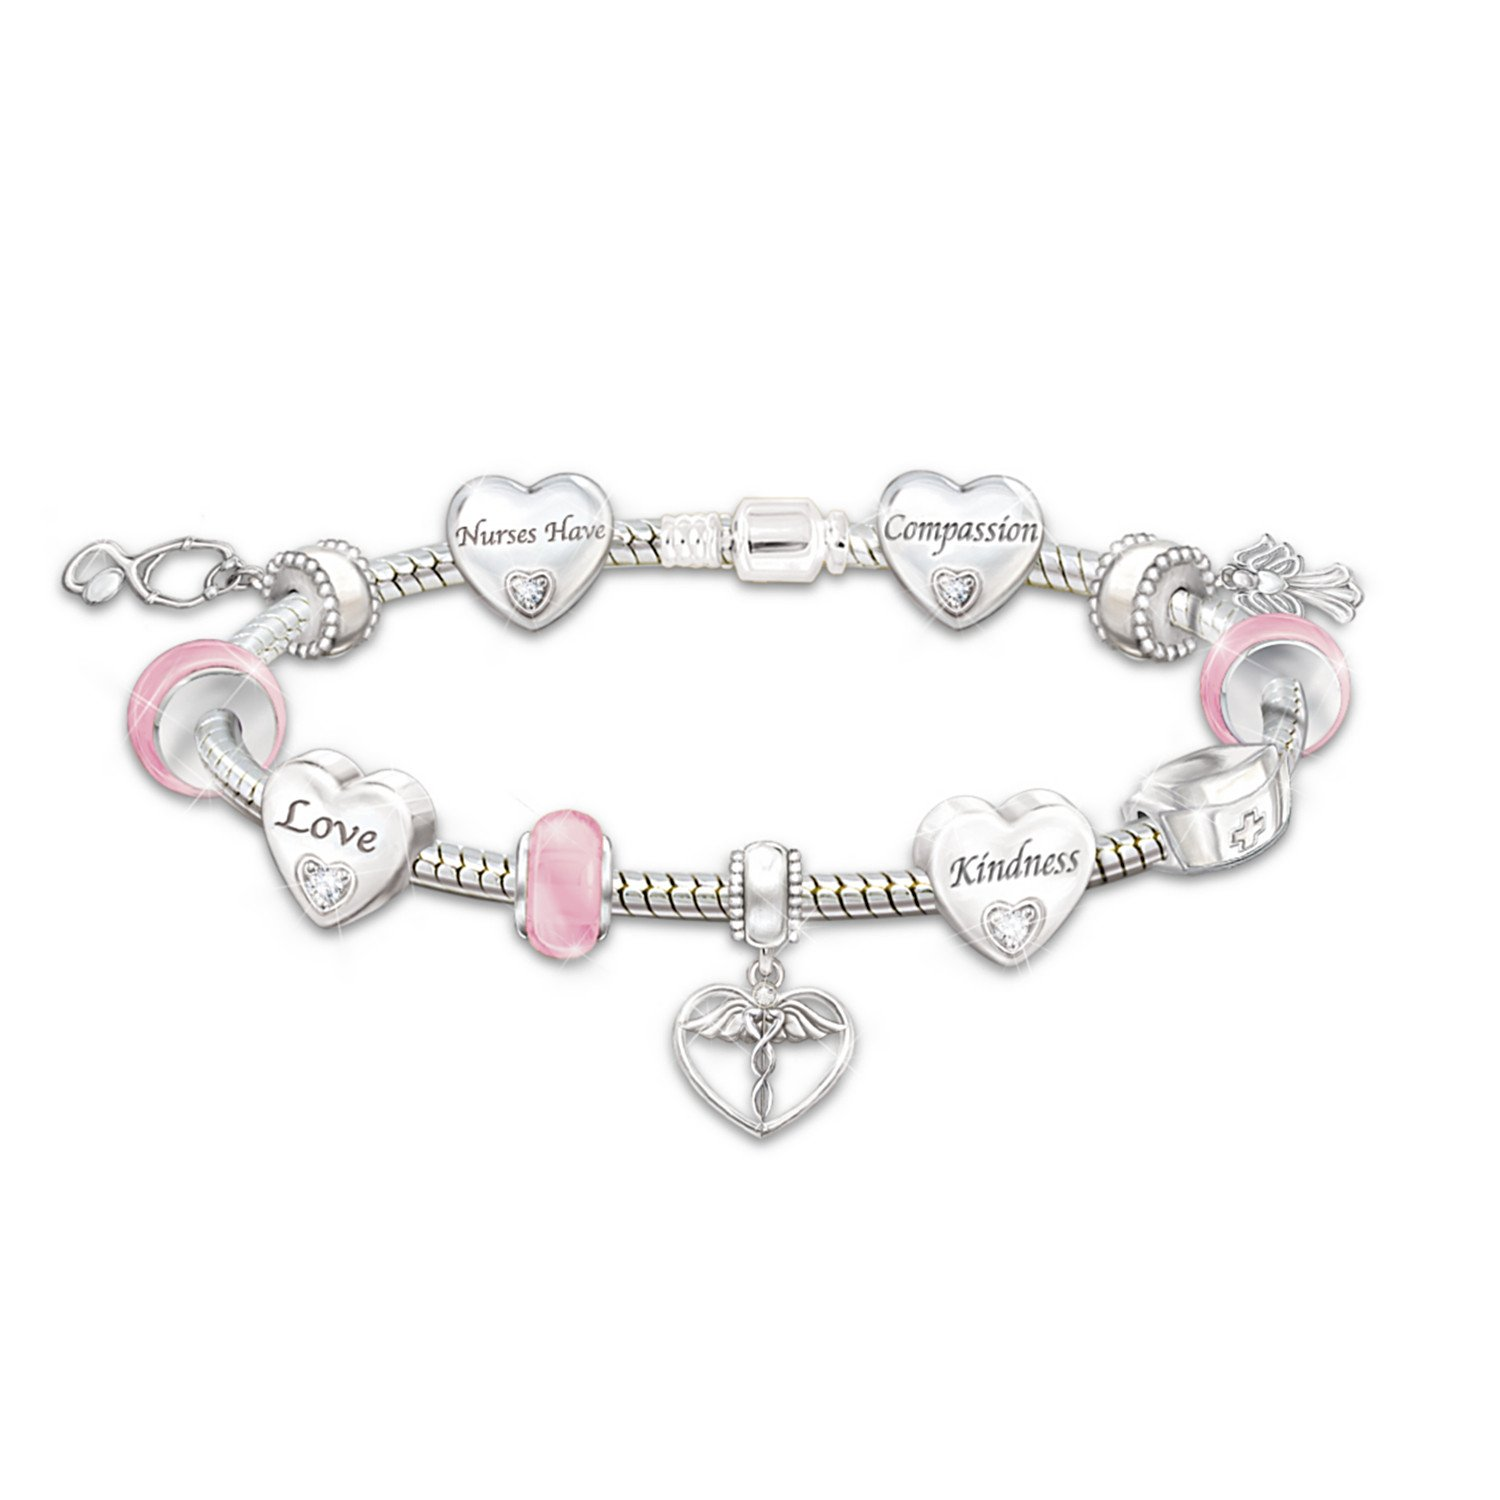 A Nurse's Heart Charm Bracelet by The Bradford Exchange by Bradford Exchange (Image #1)